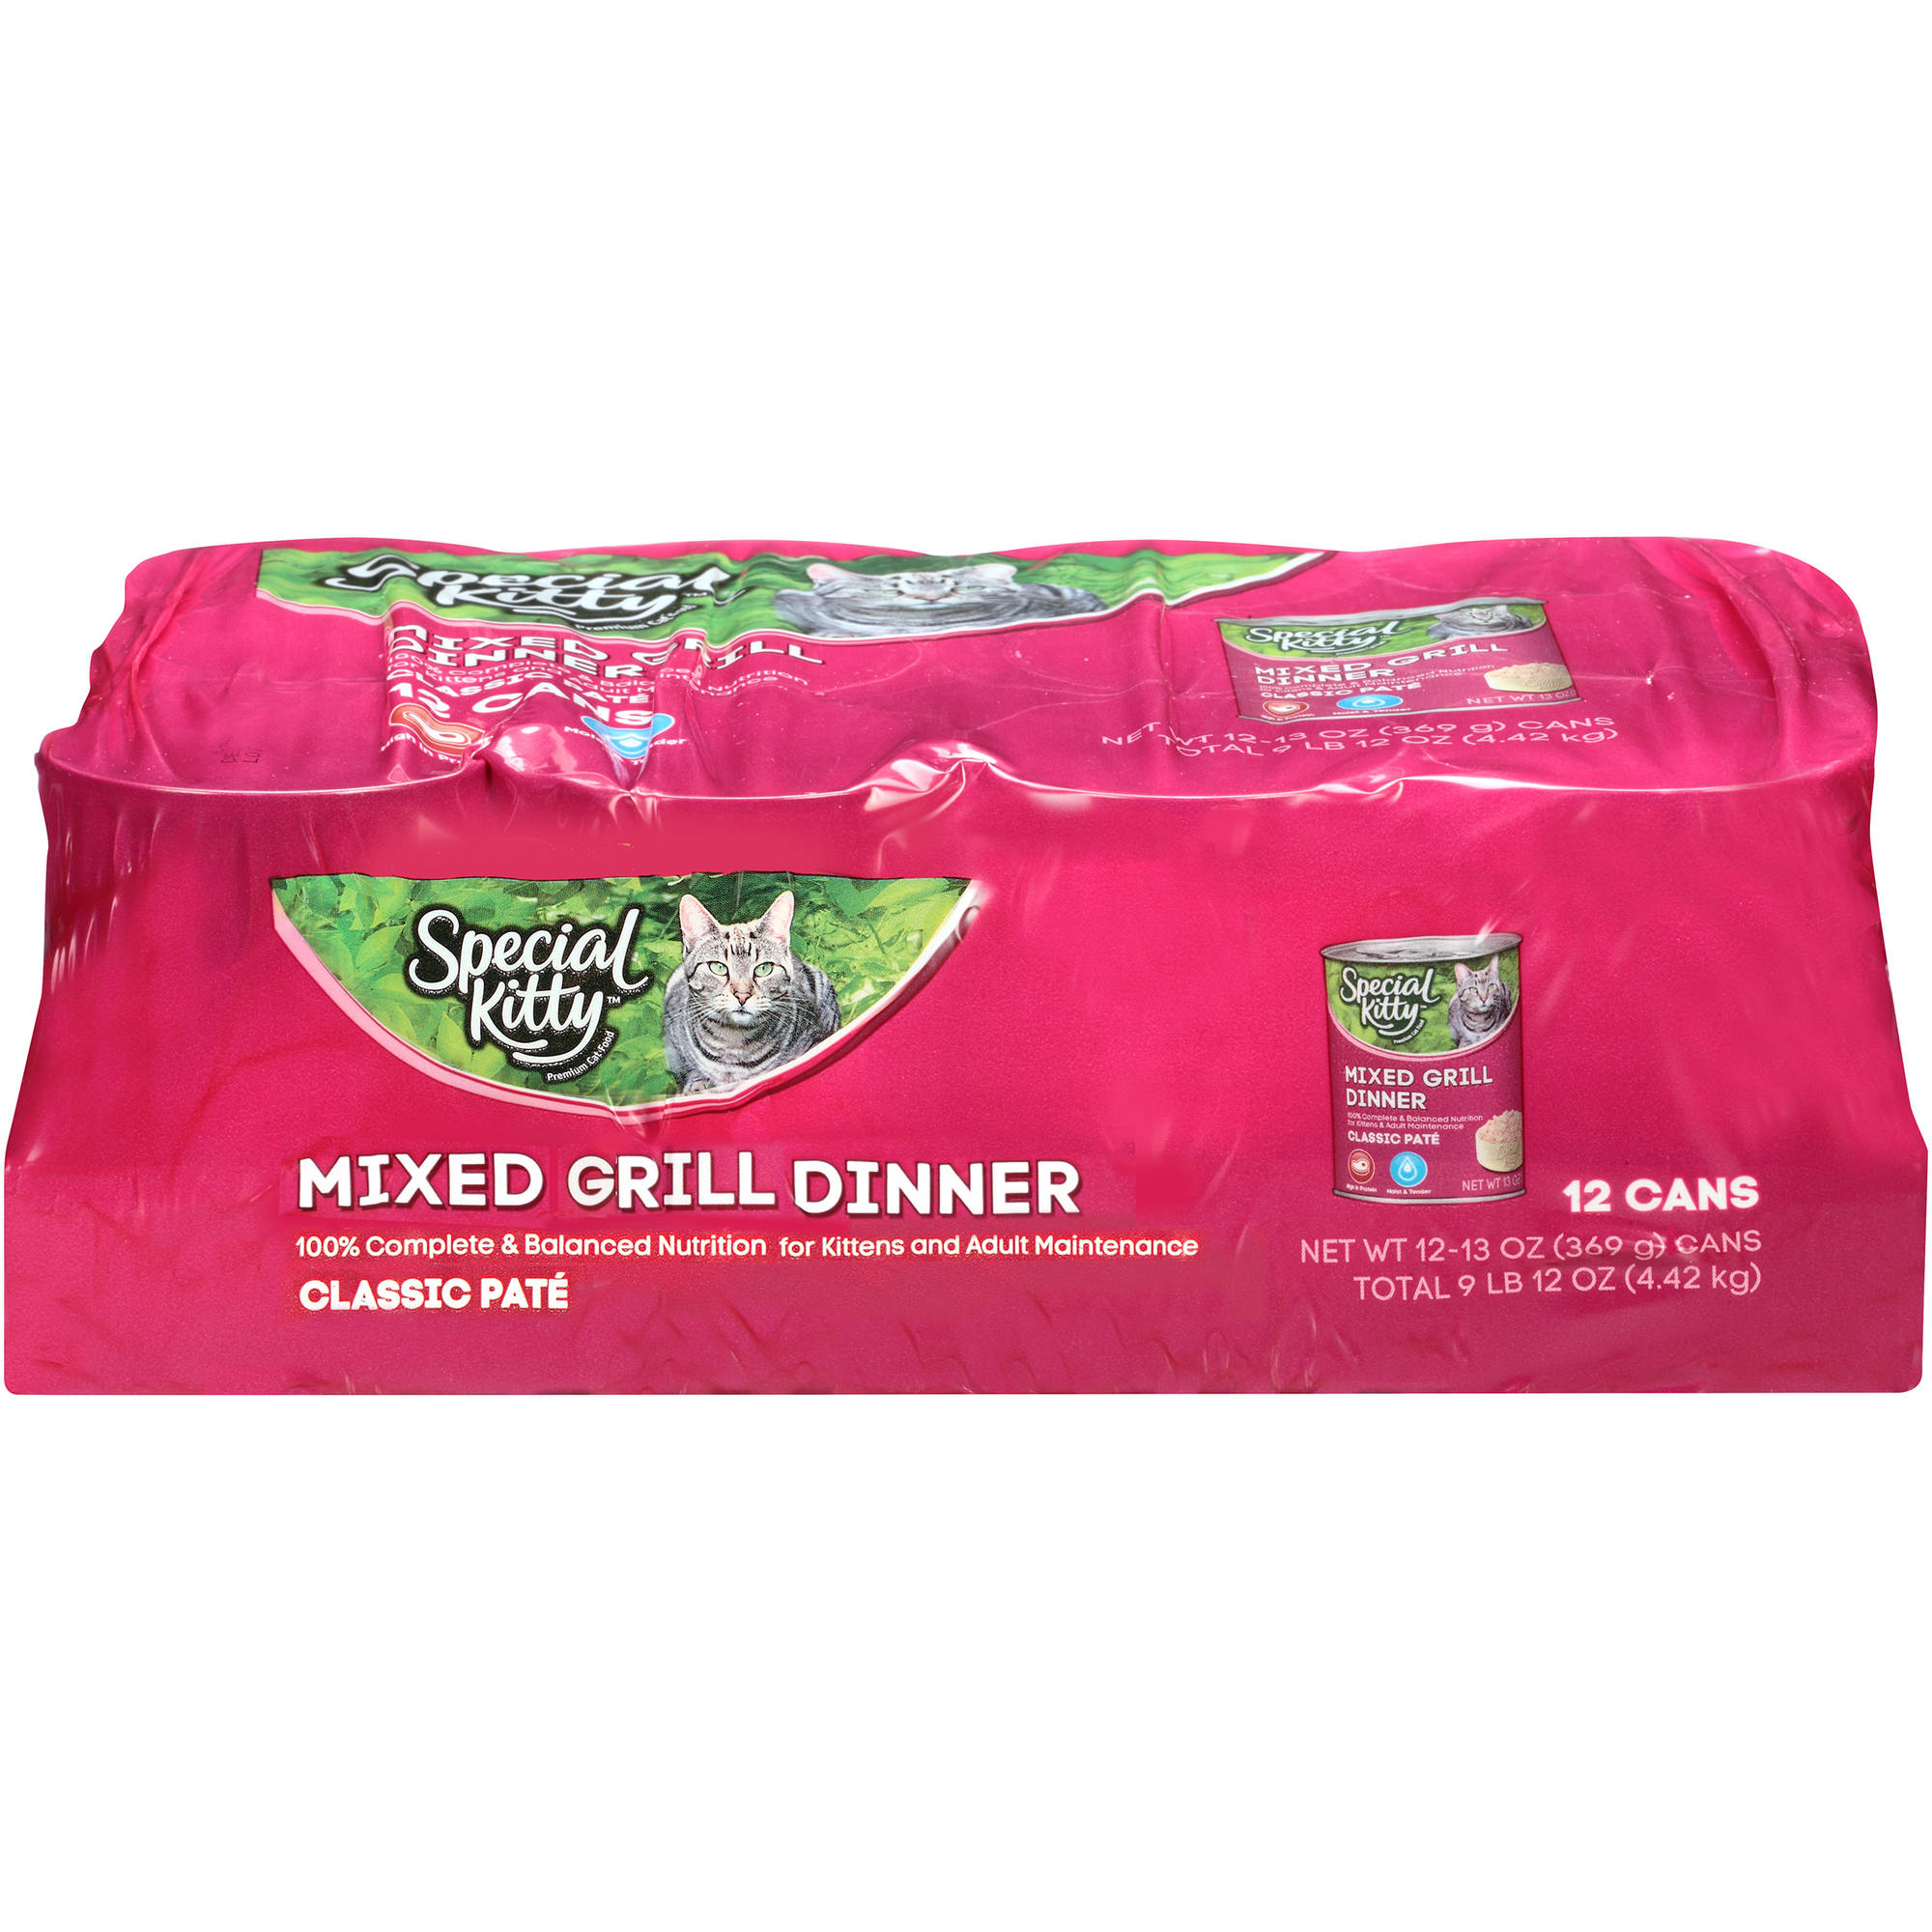 Special Kitty Mixed Grill Dinner Wet Cat Food 12-13 oz. Cans